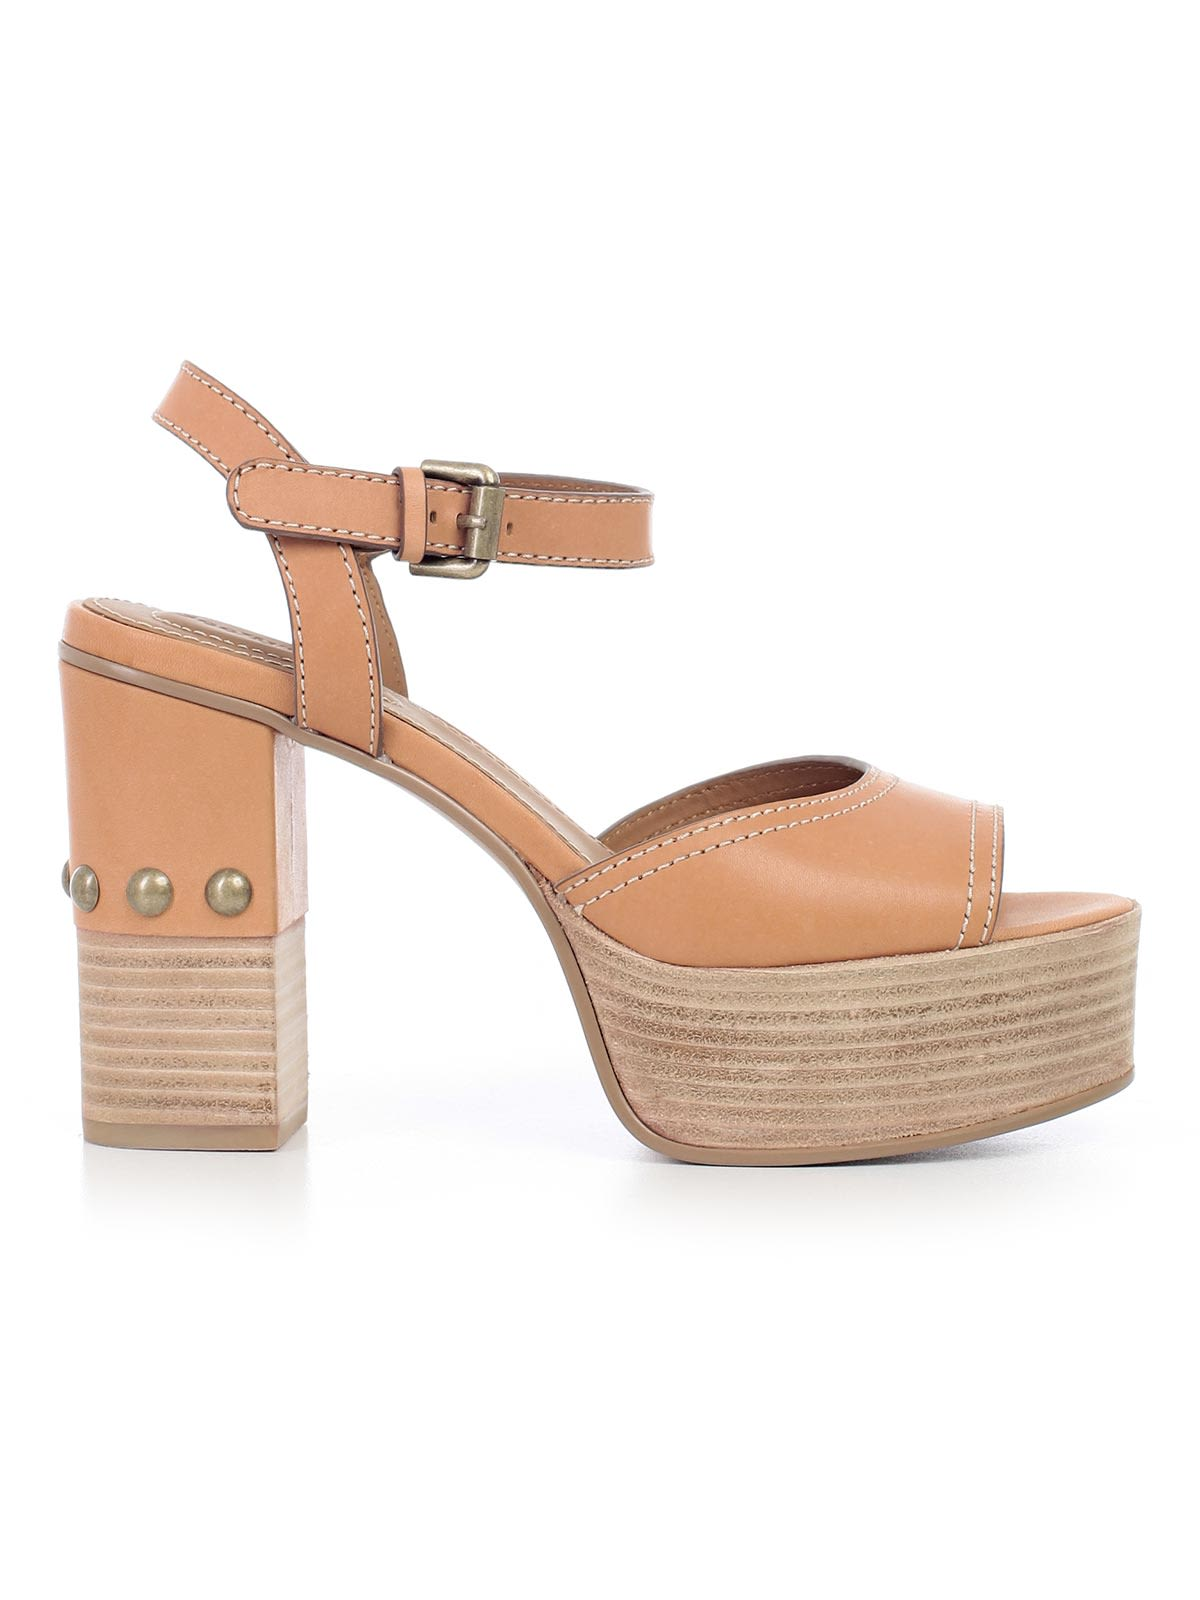 bffd87bf7f0 See by Chloé See By Chloé Sandals - Basic - 10290728